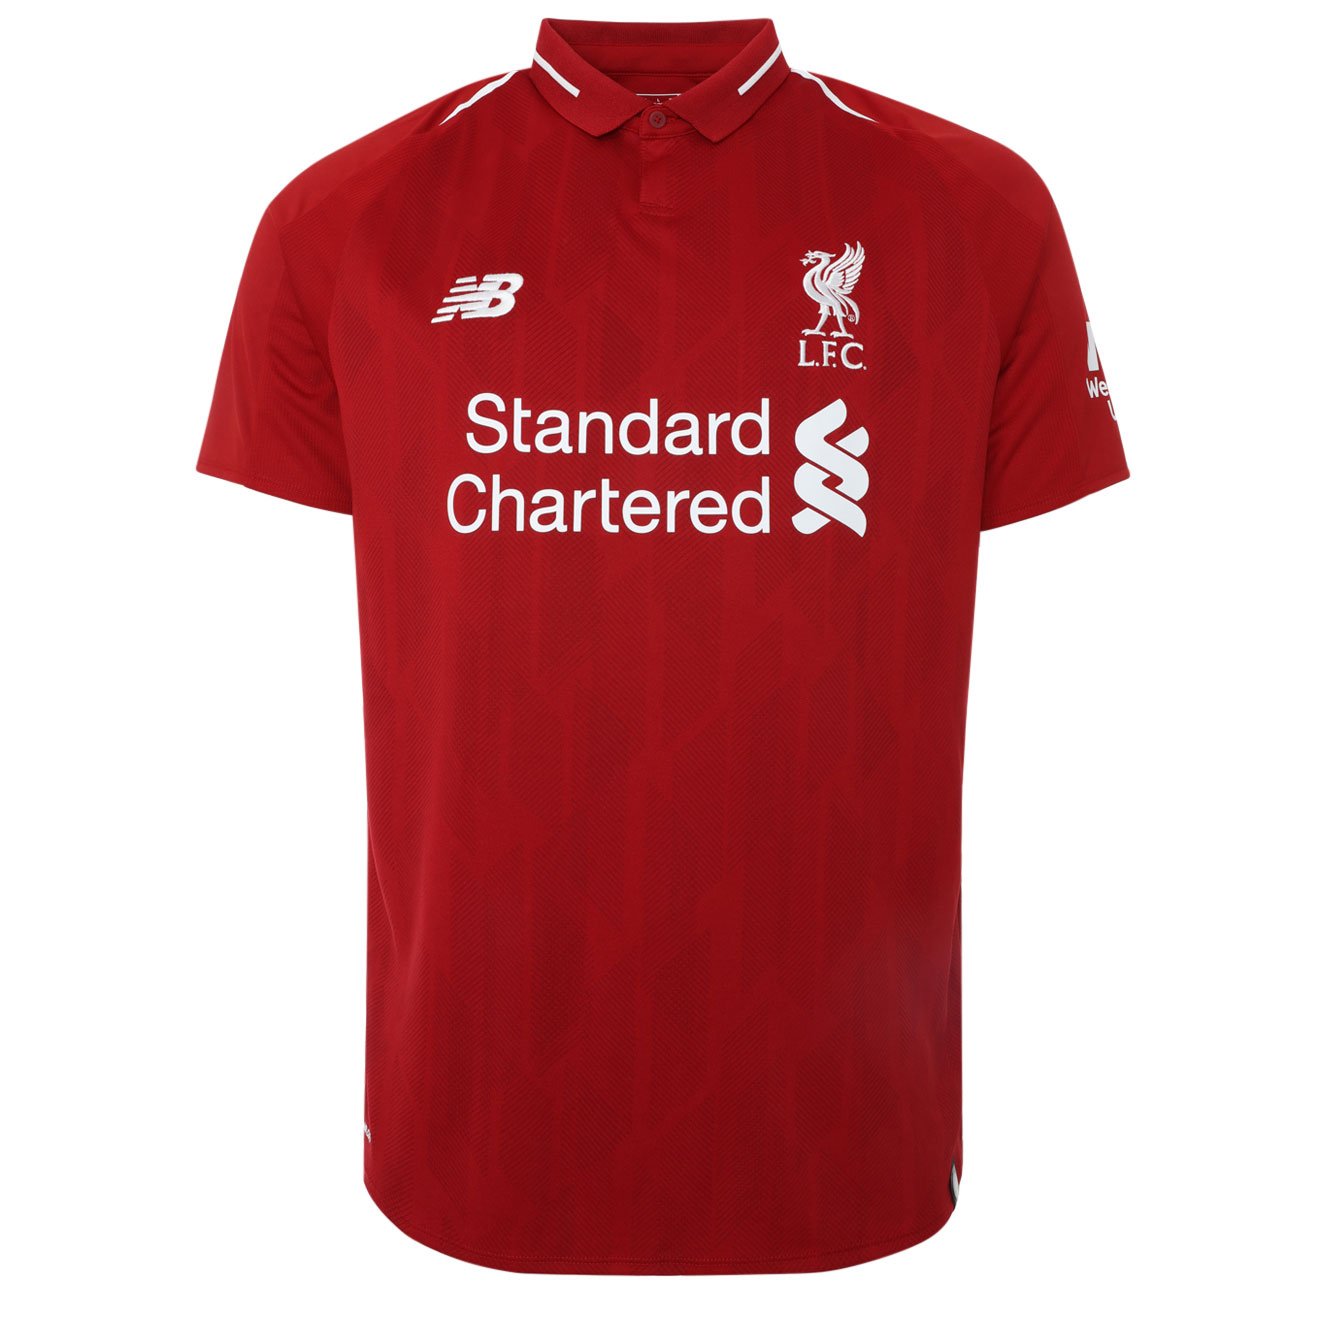 New LFC Home Shirt Front 2018-19